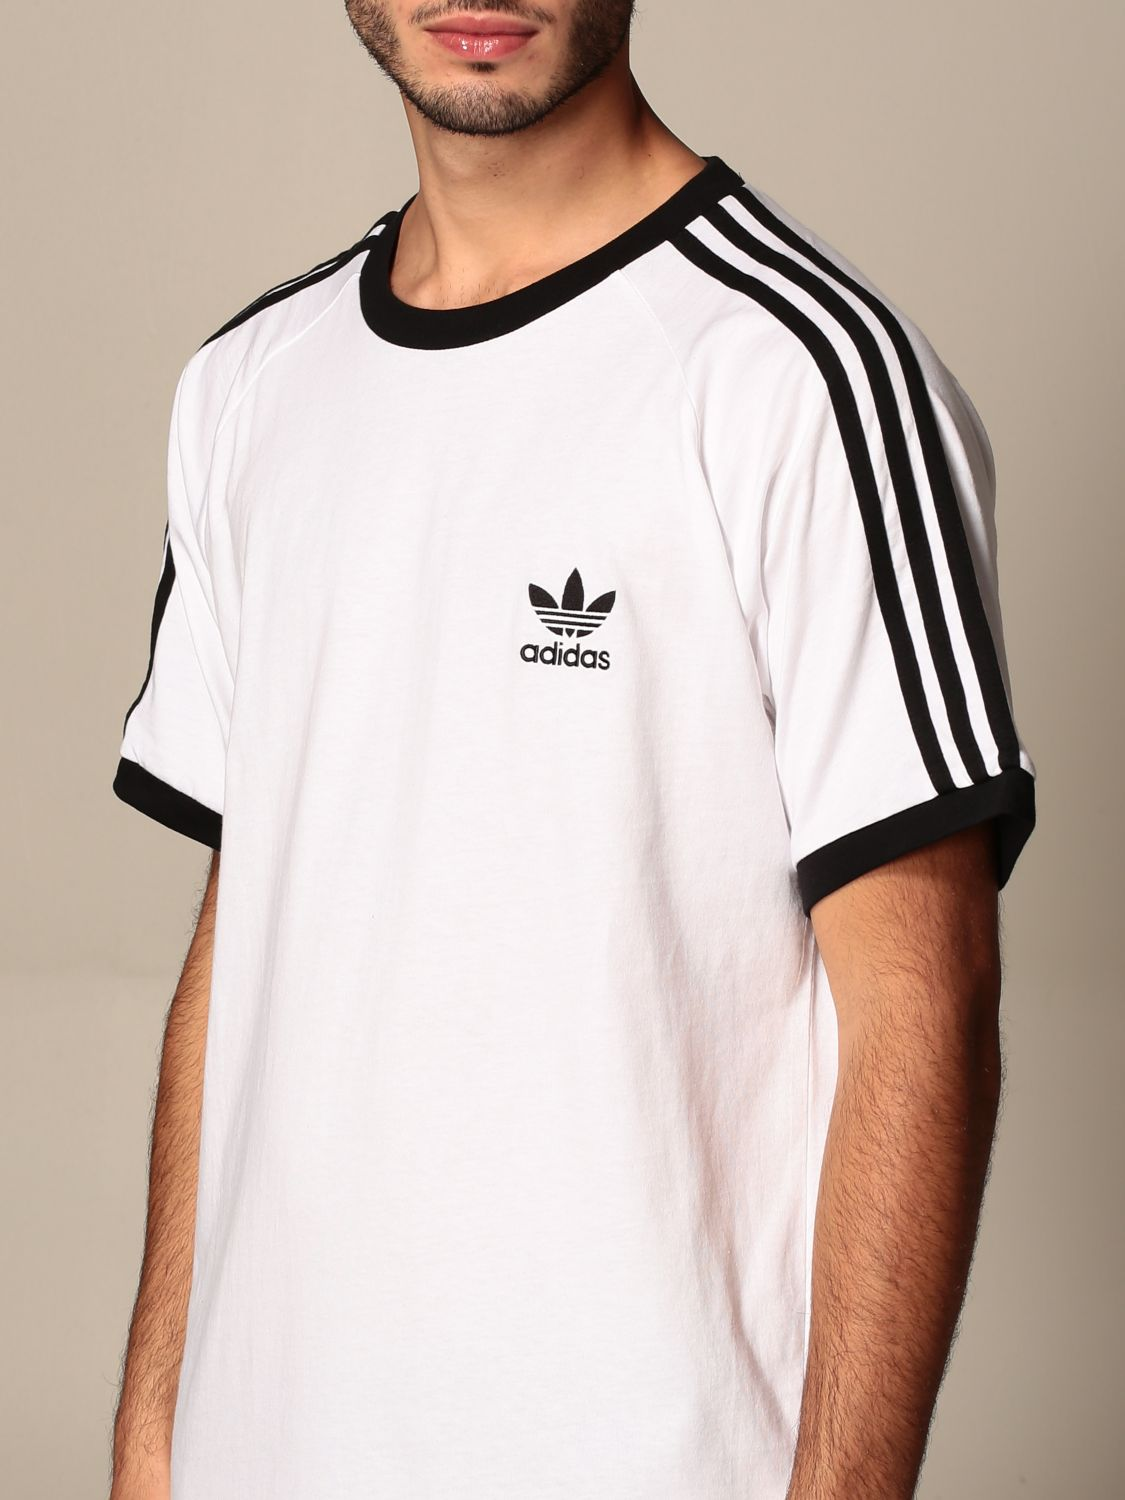 T-shirt Adidas Originals: T-shirt men Adidas Originals white 4